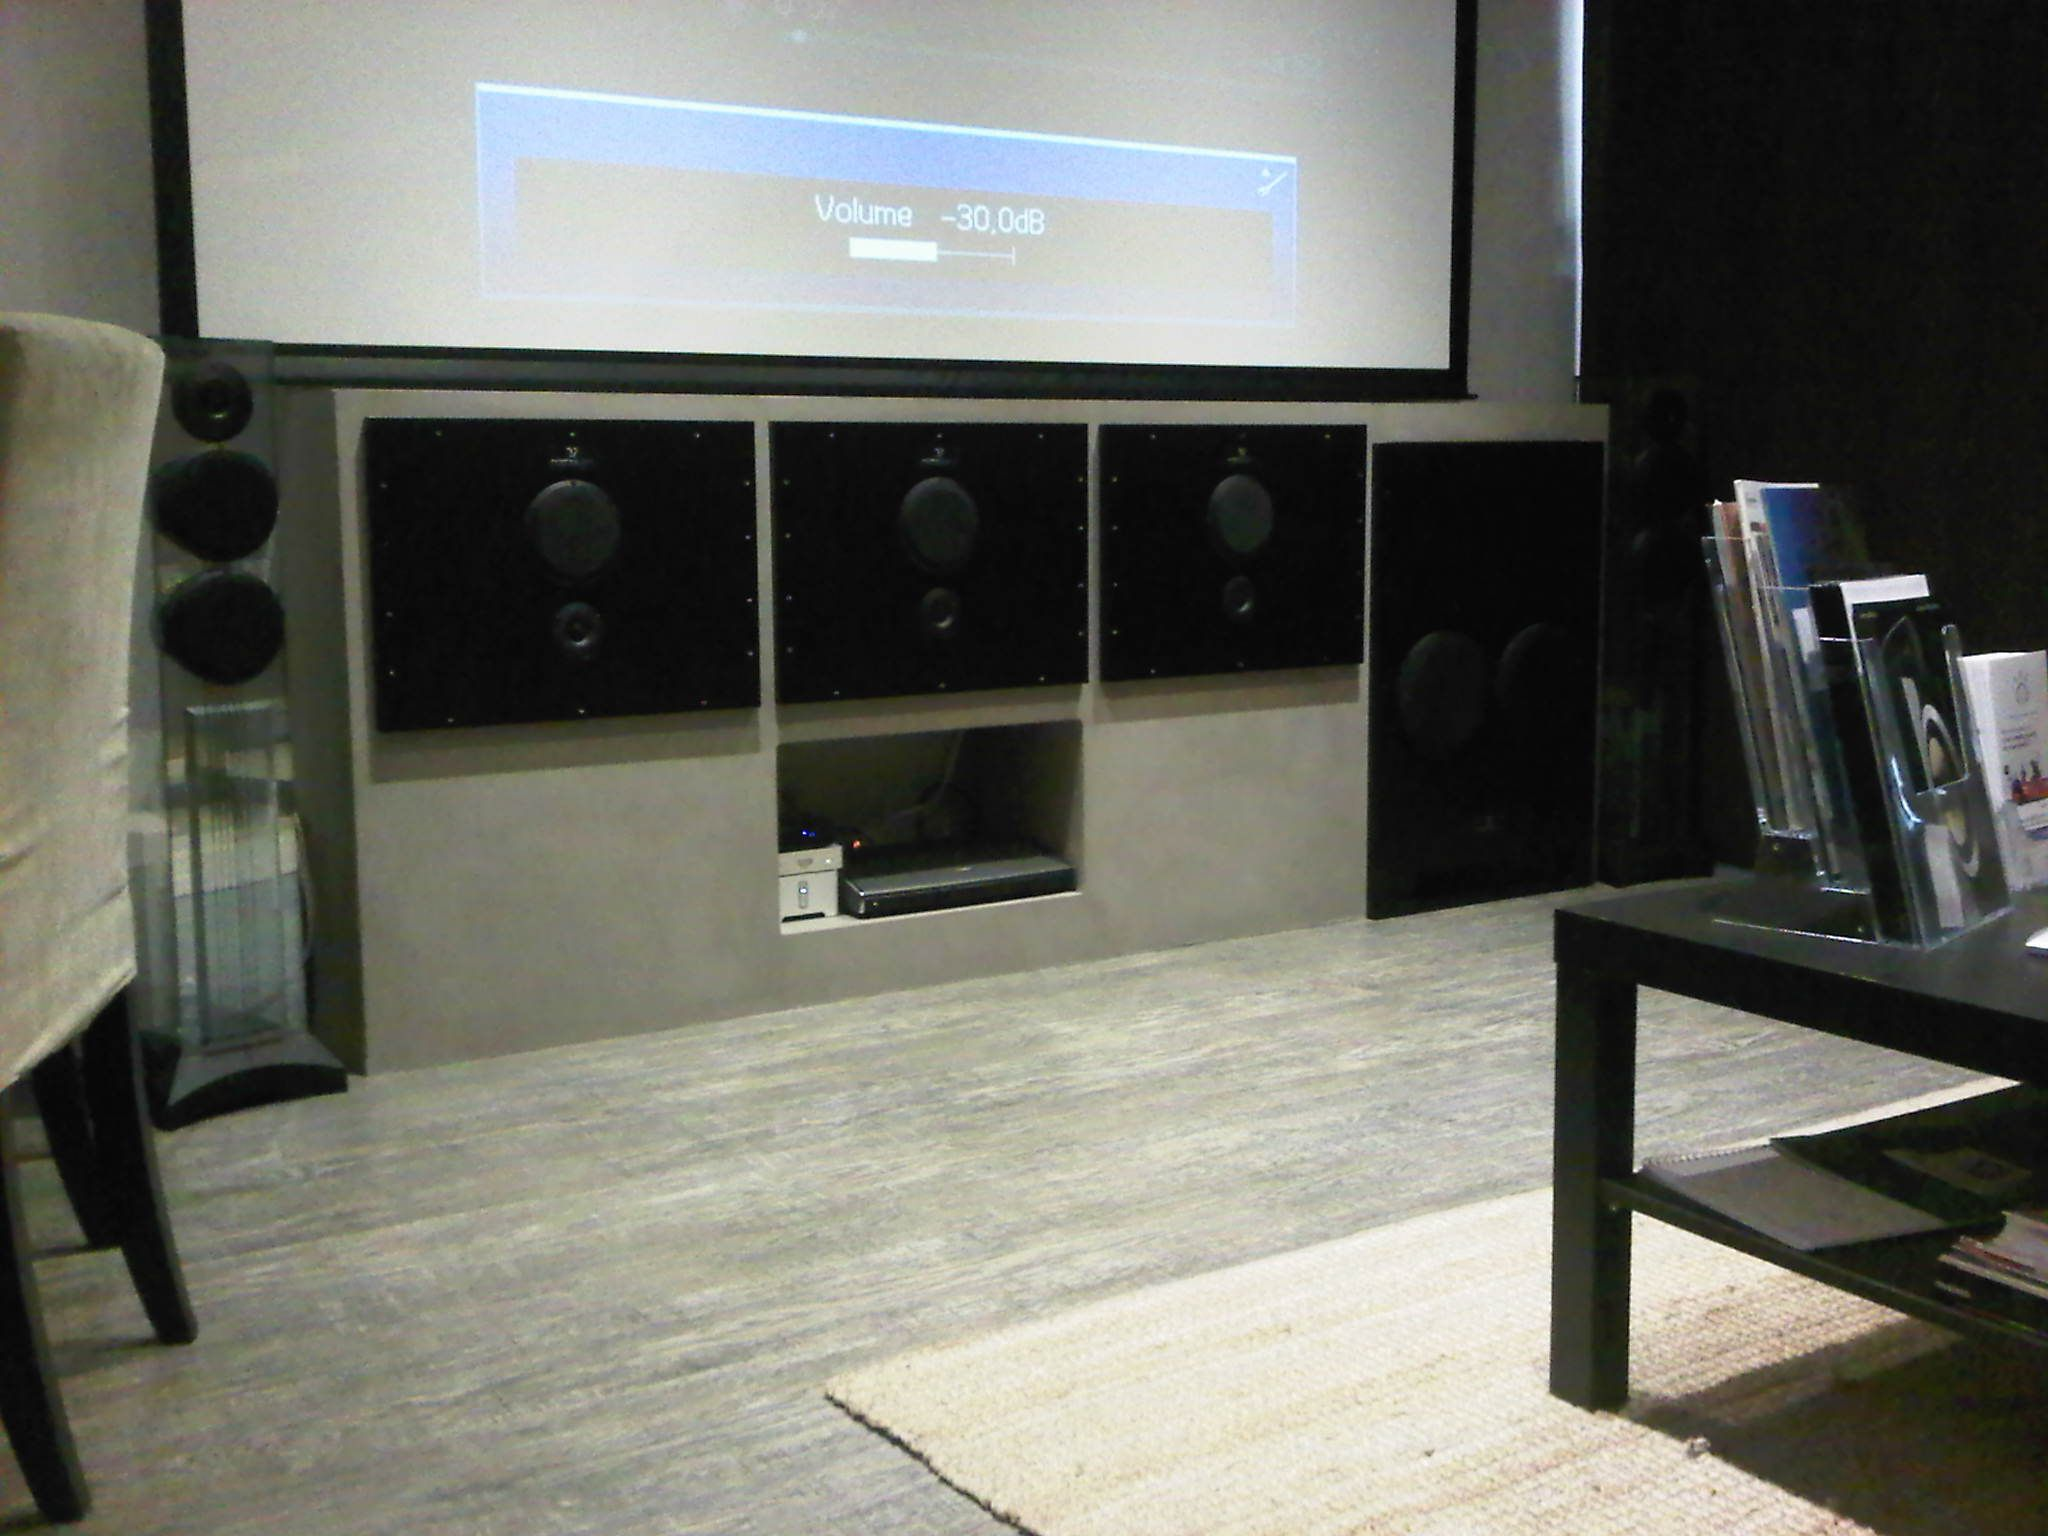 Asc Multimedia In Aix En Provence Showcases A Small Cinema Room With 3 Sat150 1 Sub600 By Waterfall